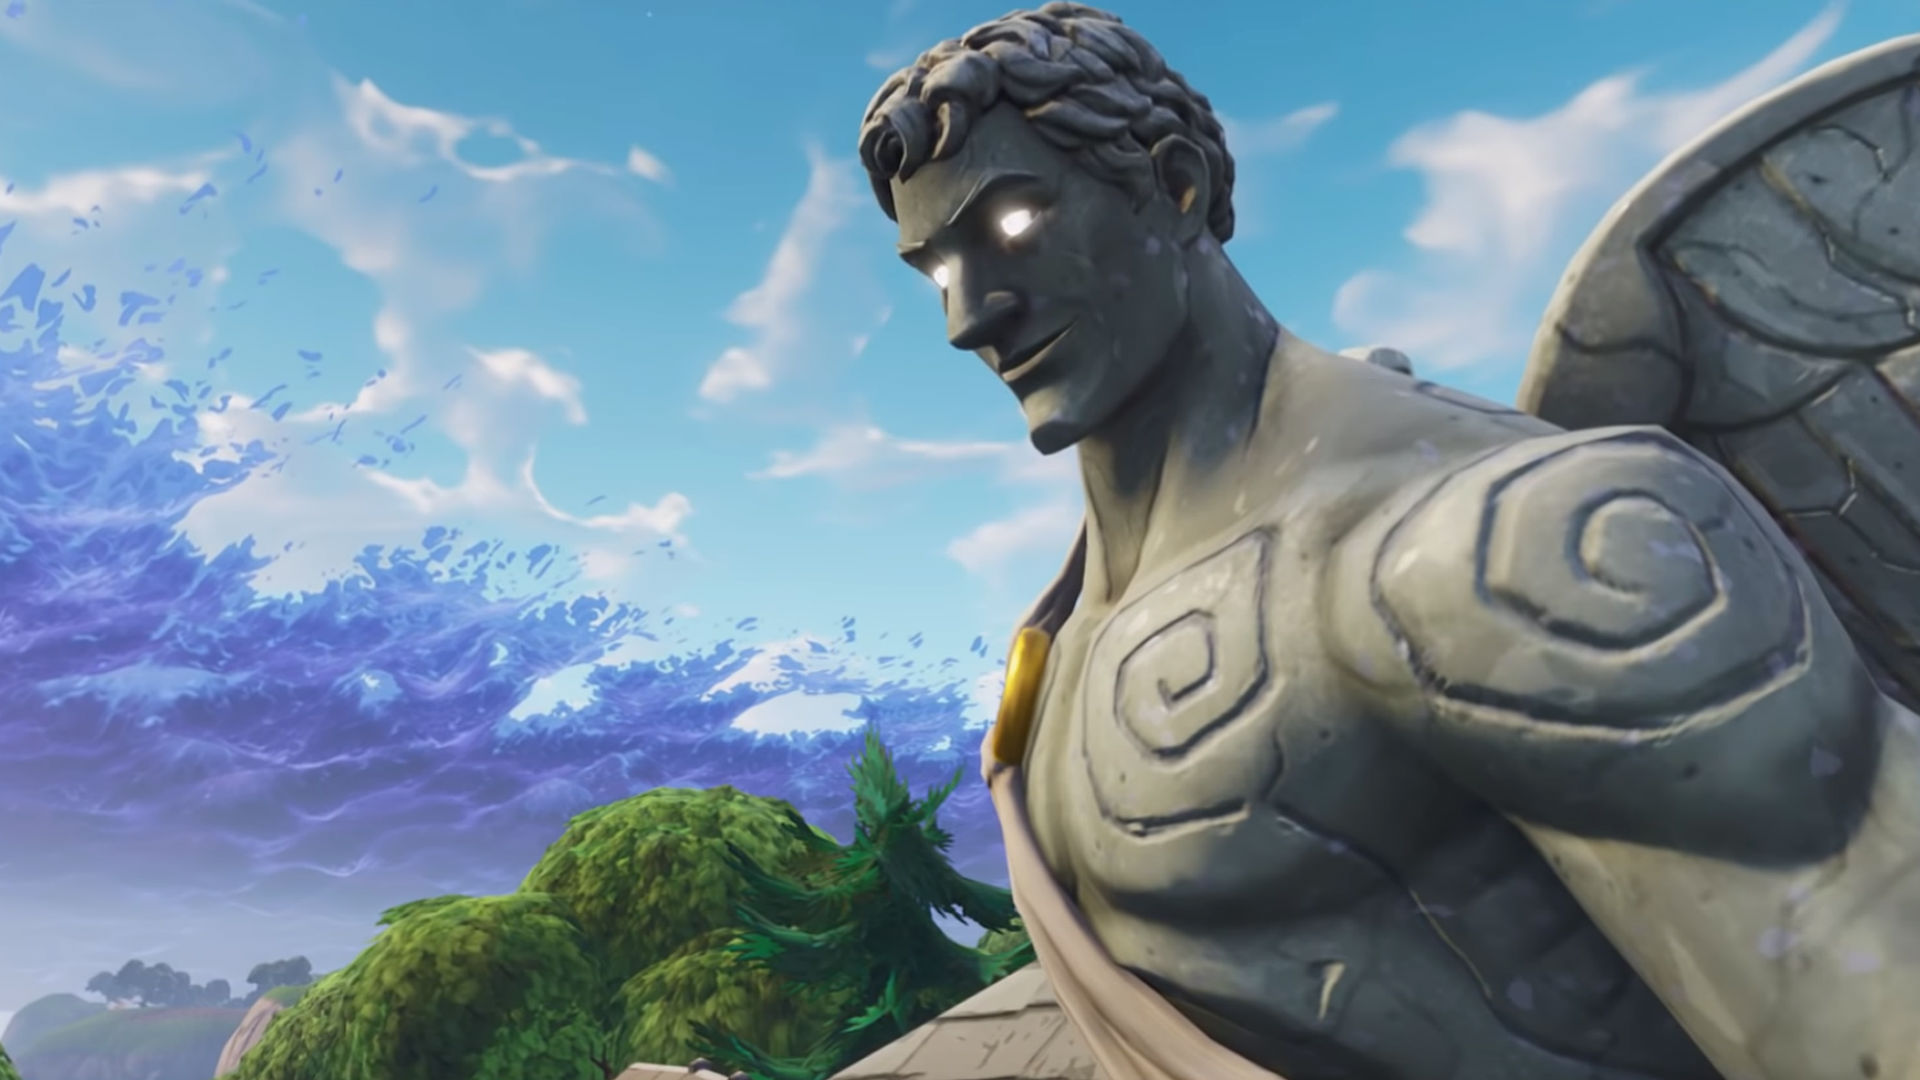 Best Fortnite skins ranked: the finest from the Fortnite